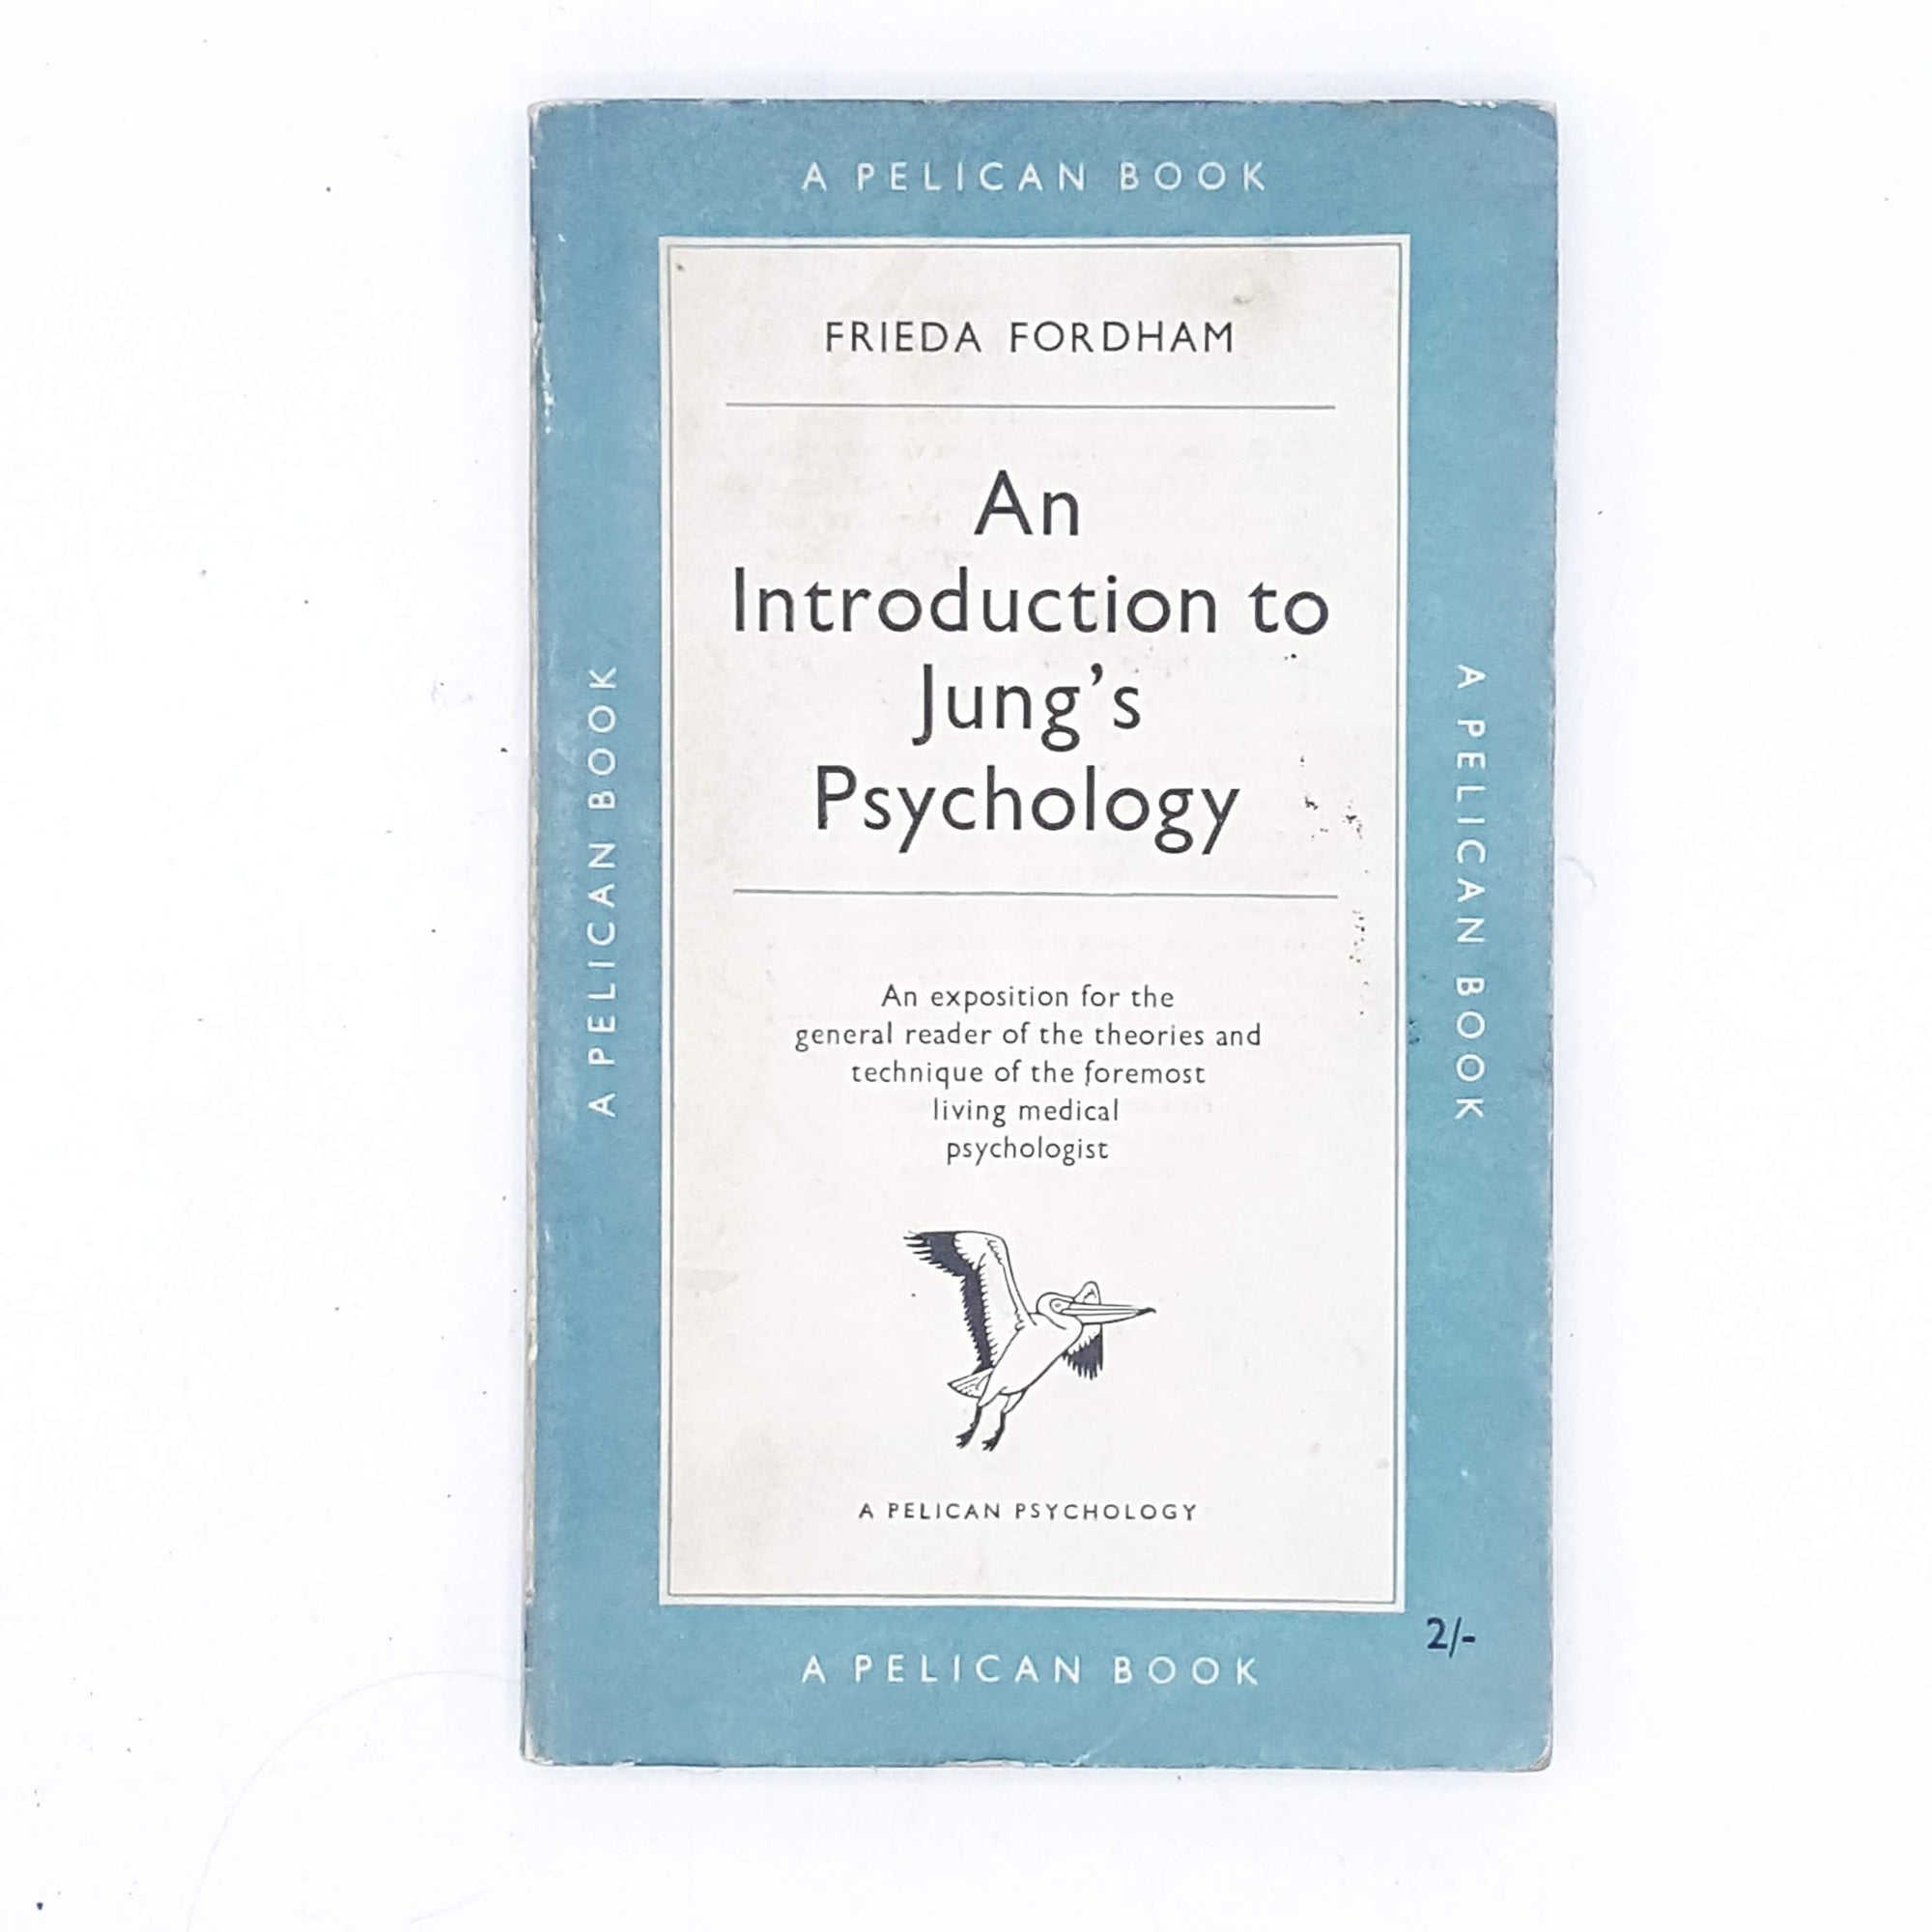 An Introduction to Jung's Psychology by Frieda Fordham 1953